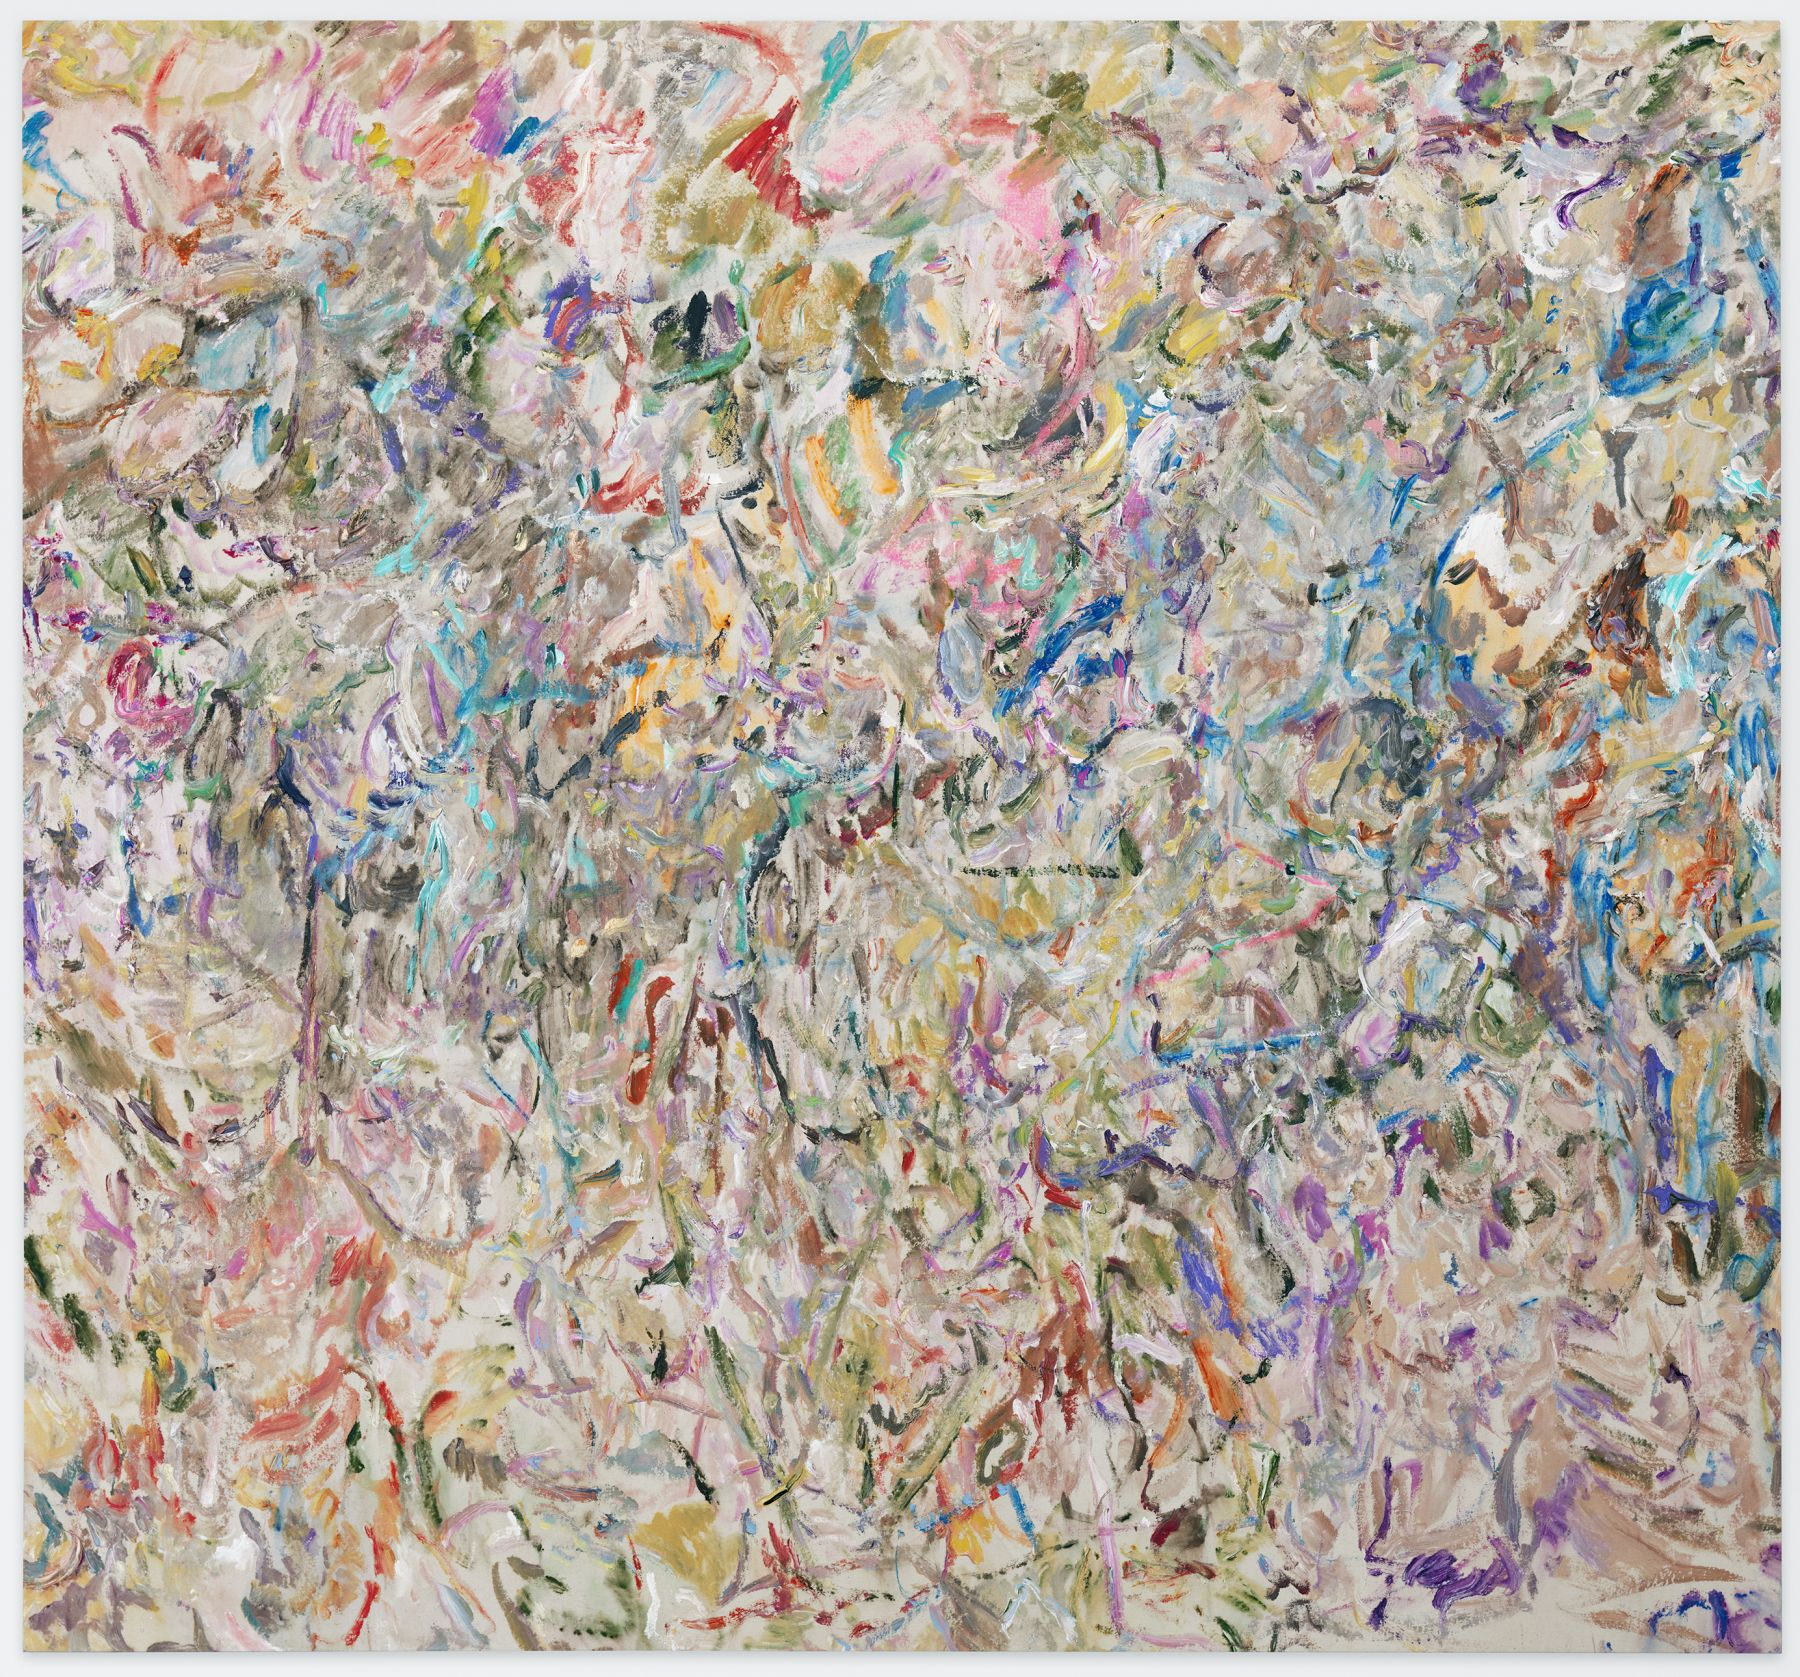 Larry Poons, Over the Hills, 2014, acrylic on canvas, 66 1/4 x 70 3/4 inches,